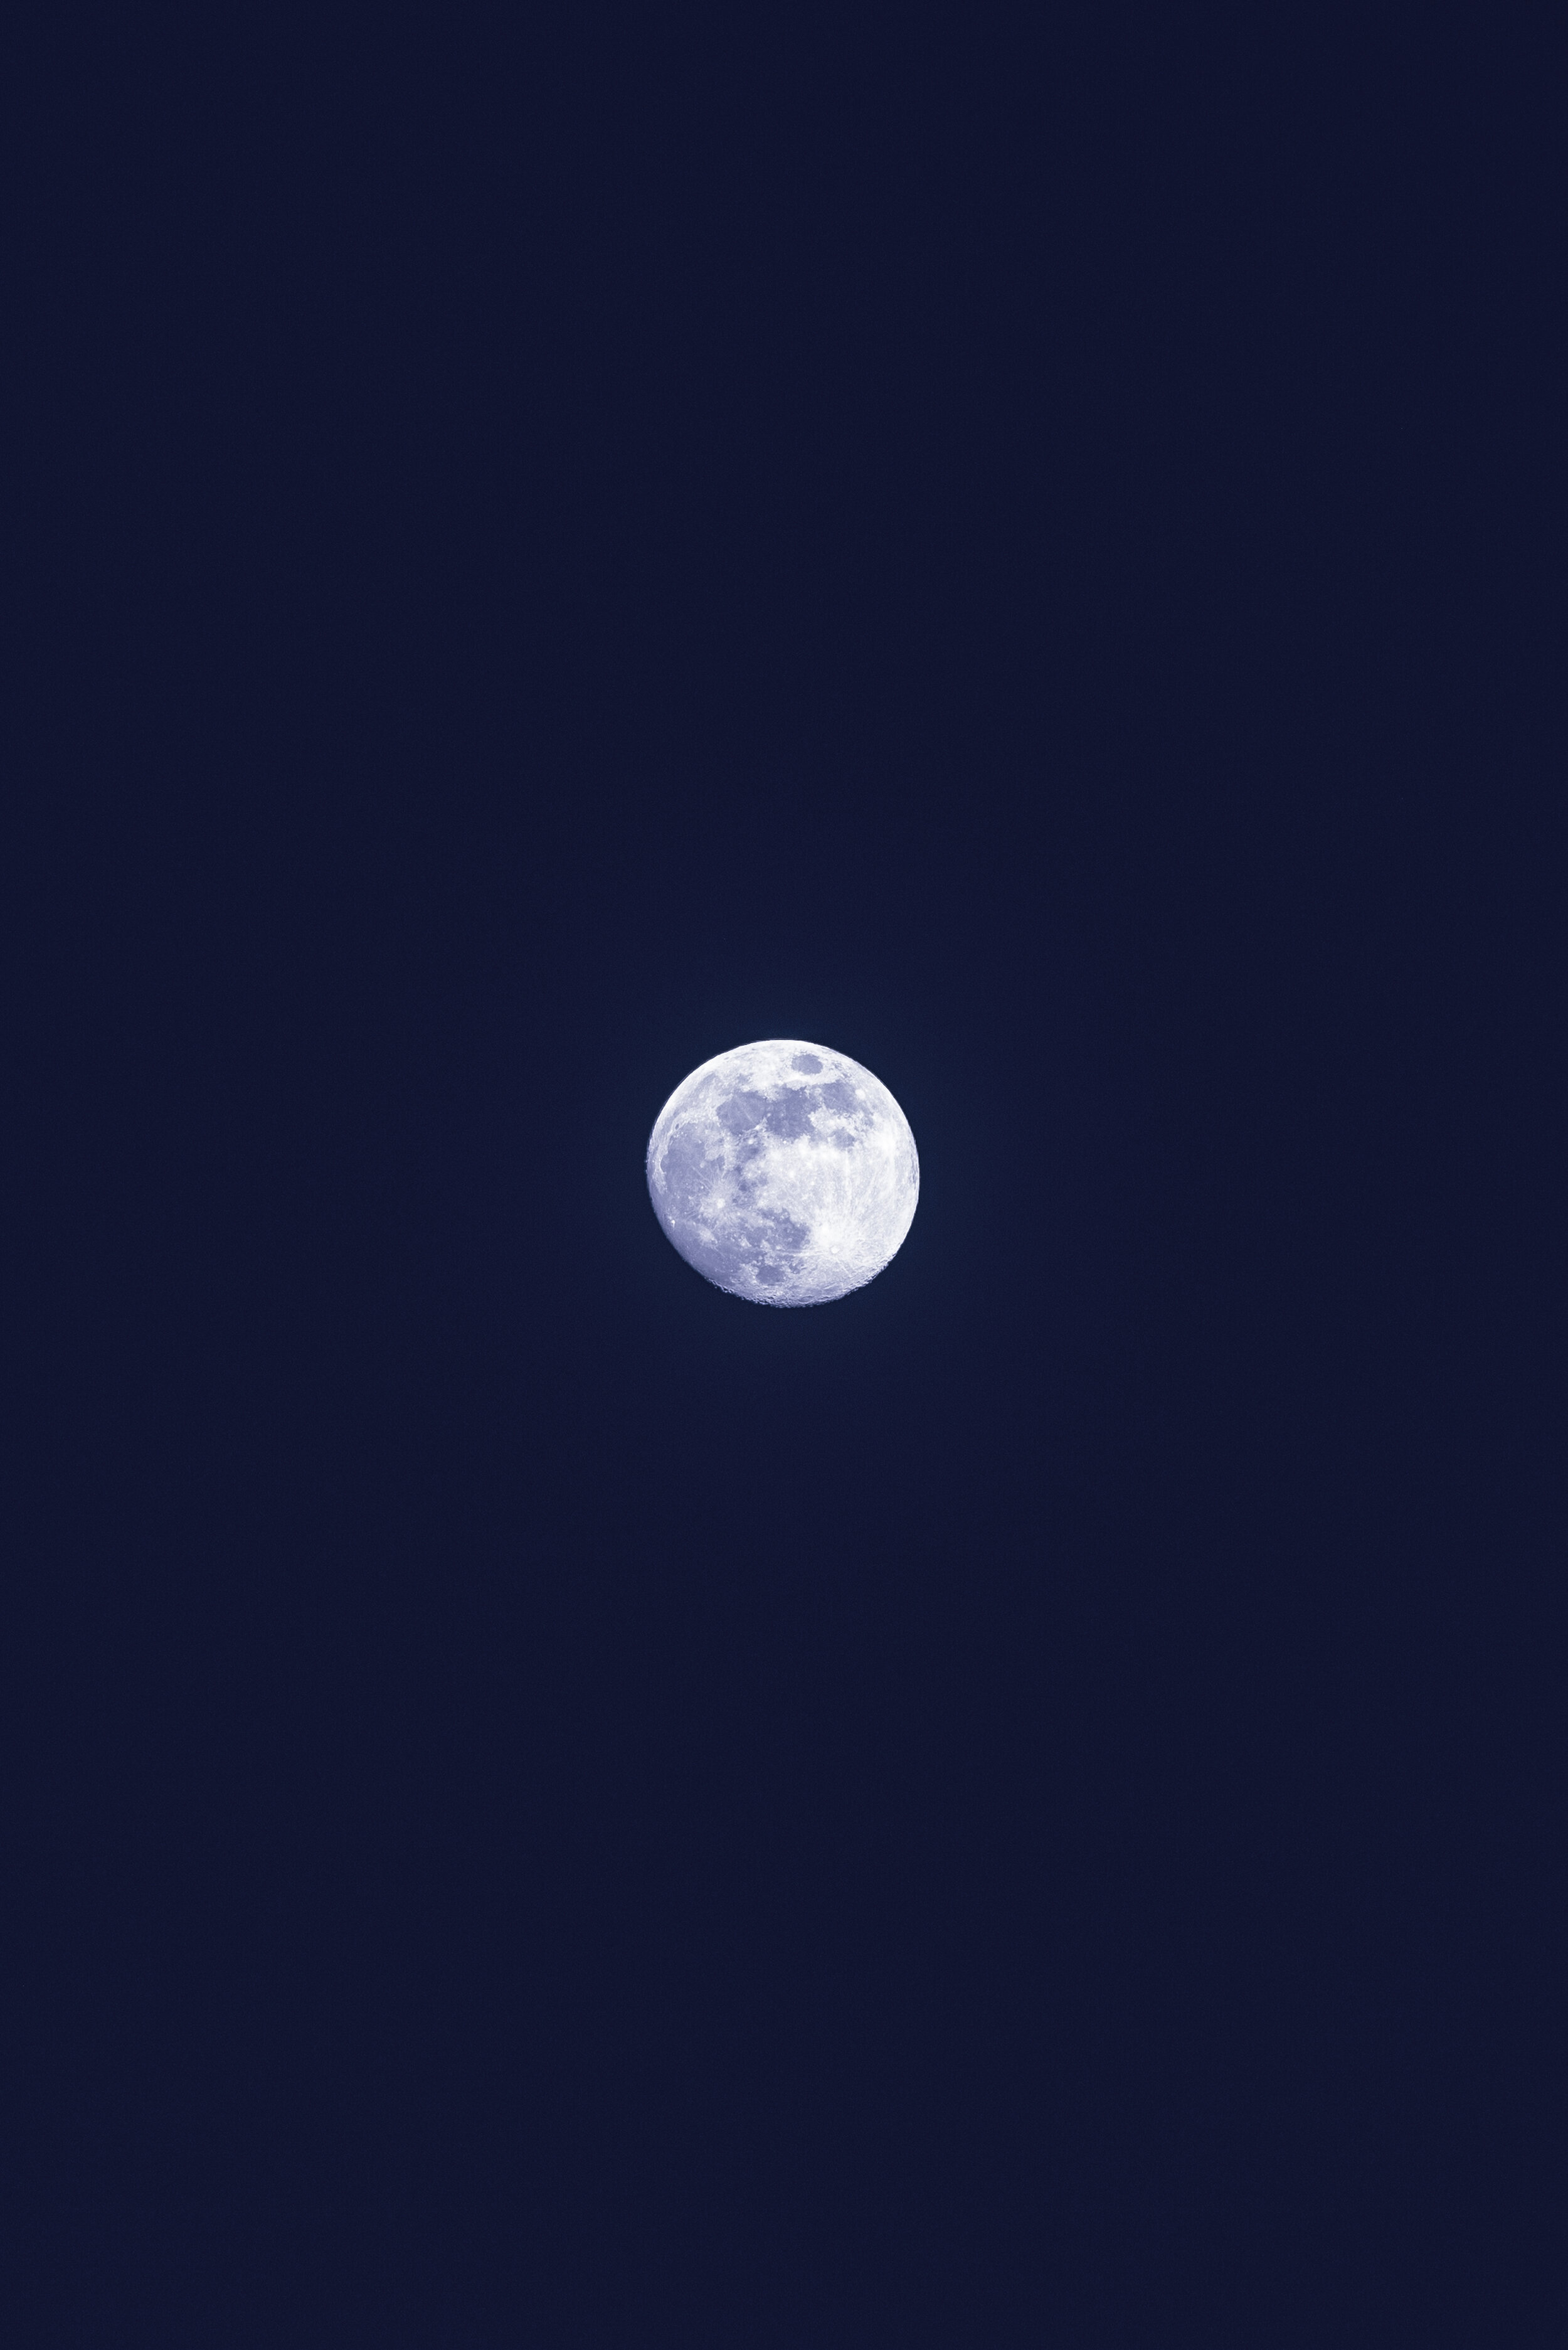 How to cleanse crystals under a full moon